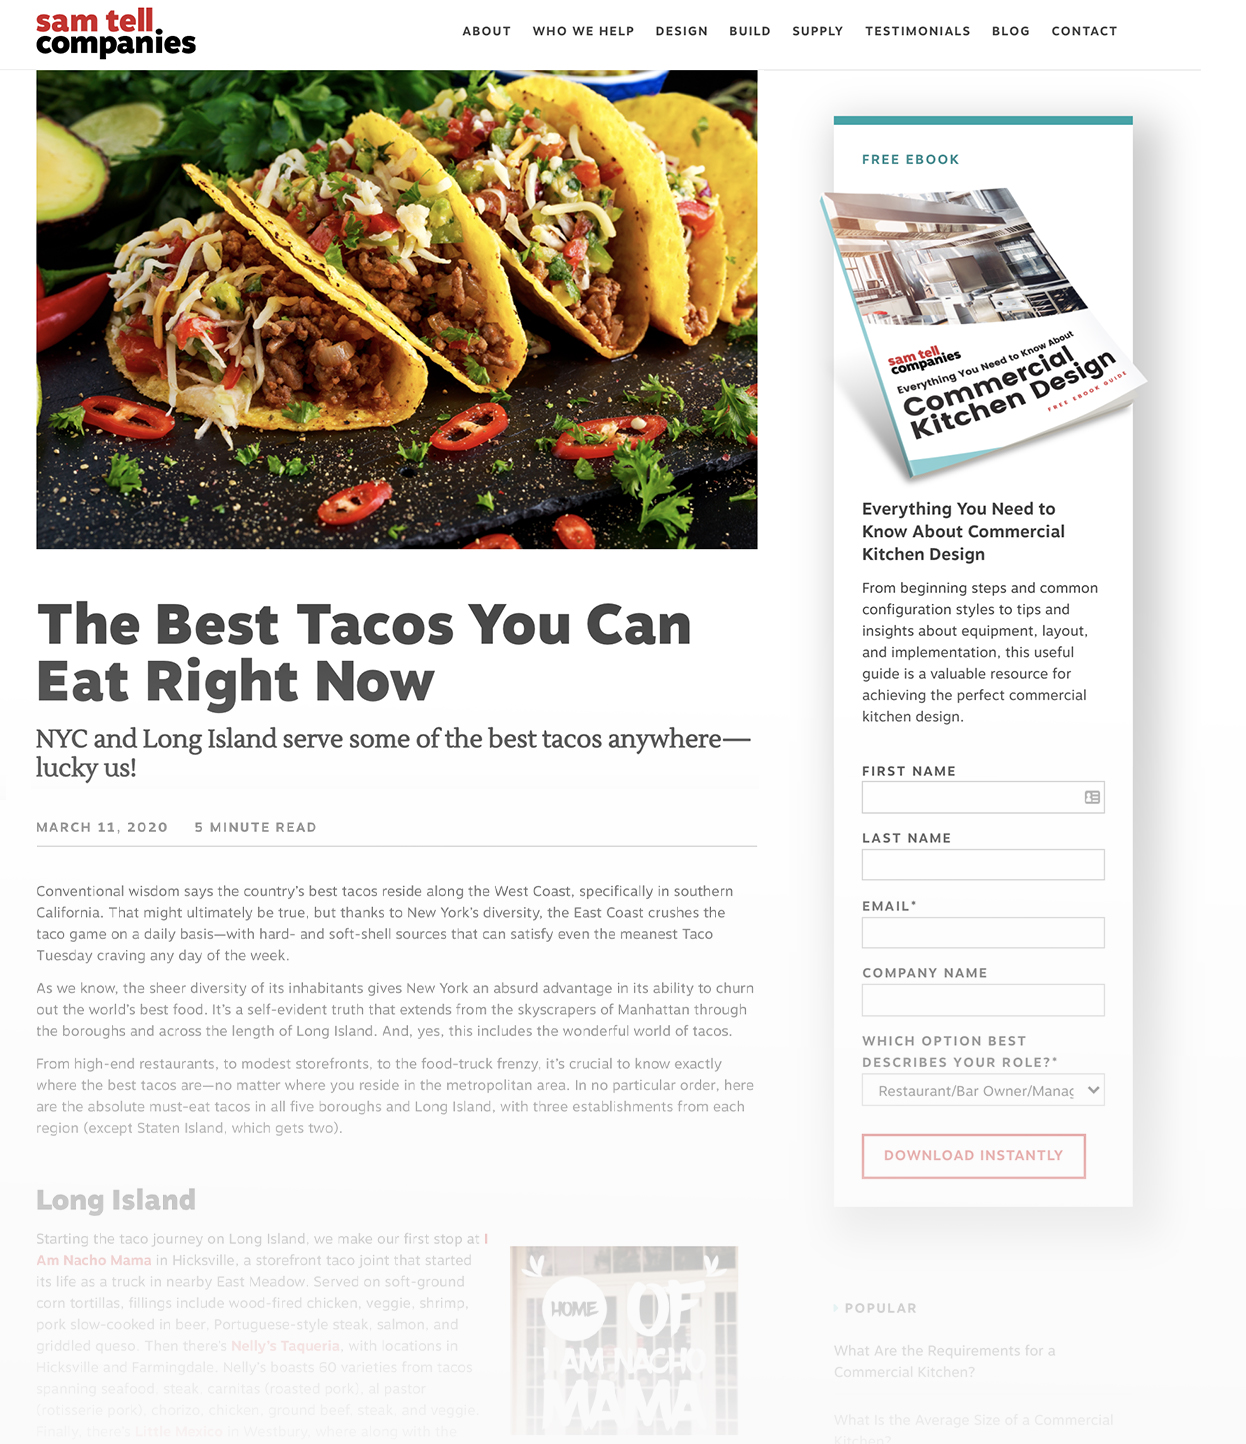 Screenshot of Sam Tell Blog called The Best Tacos You Can Eat Right Now